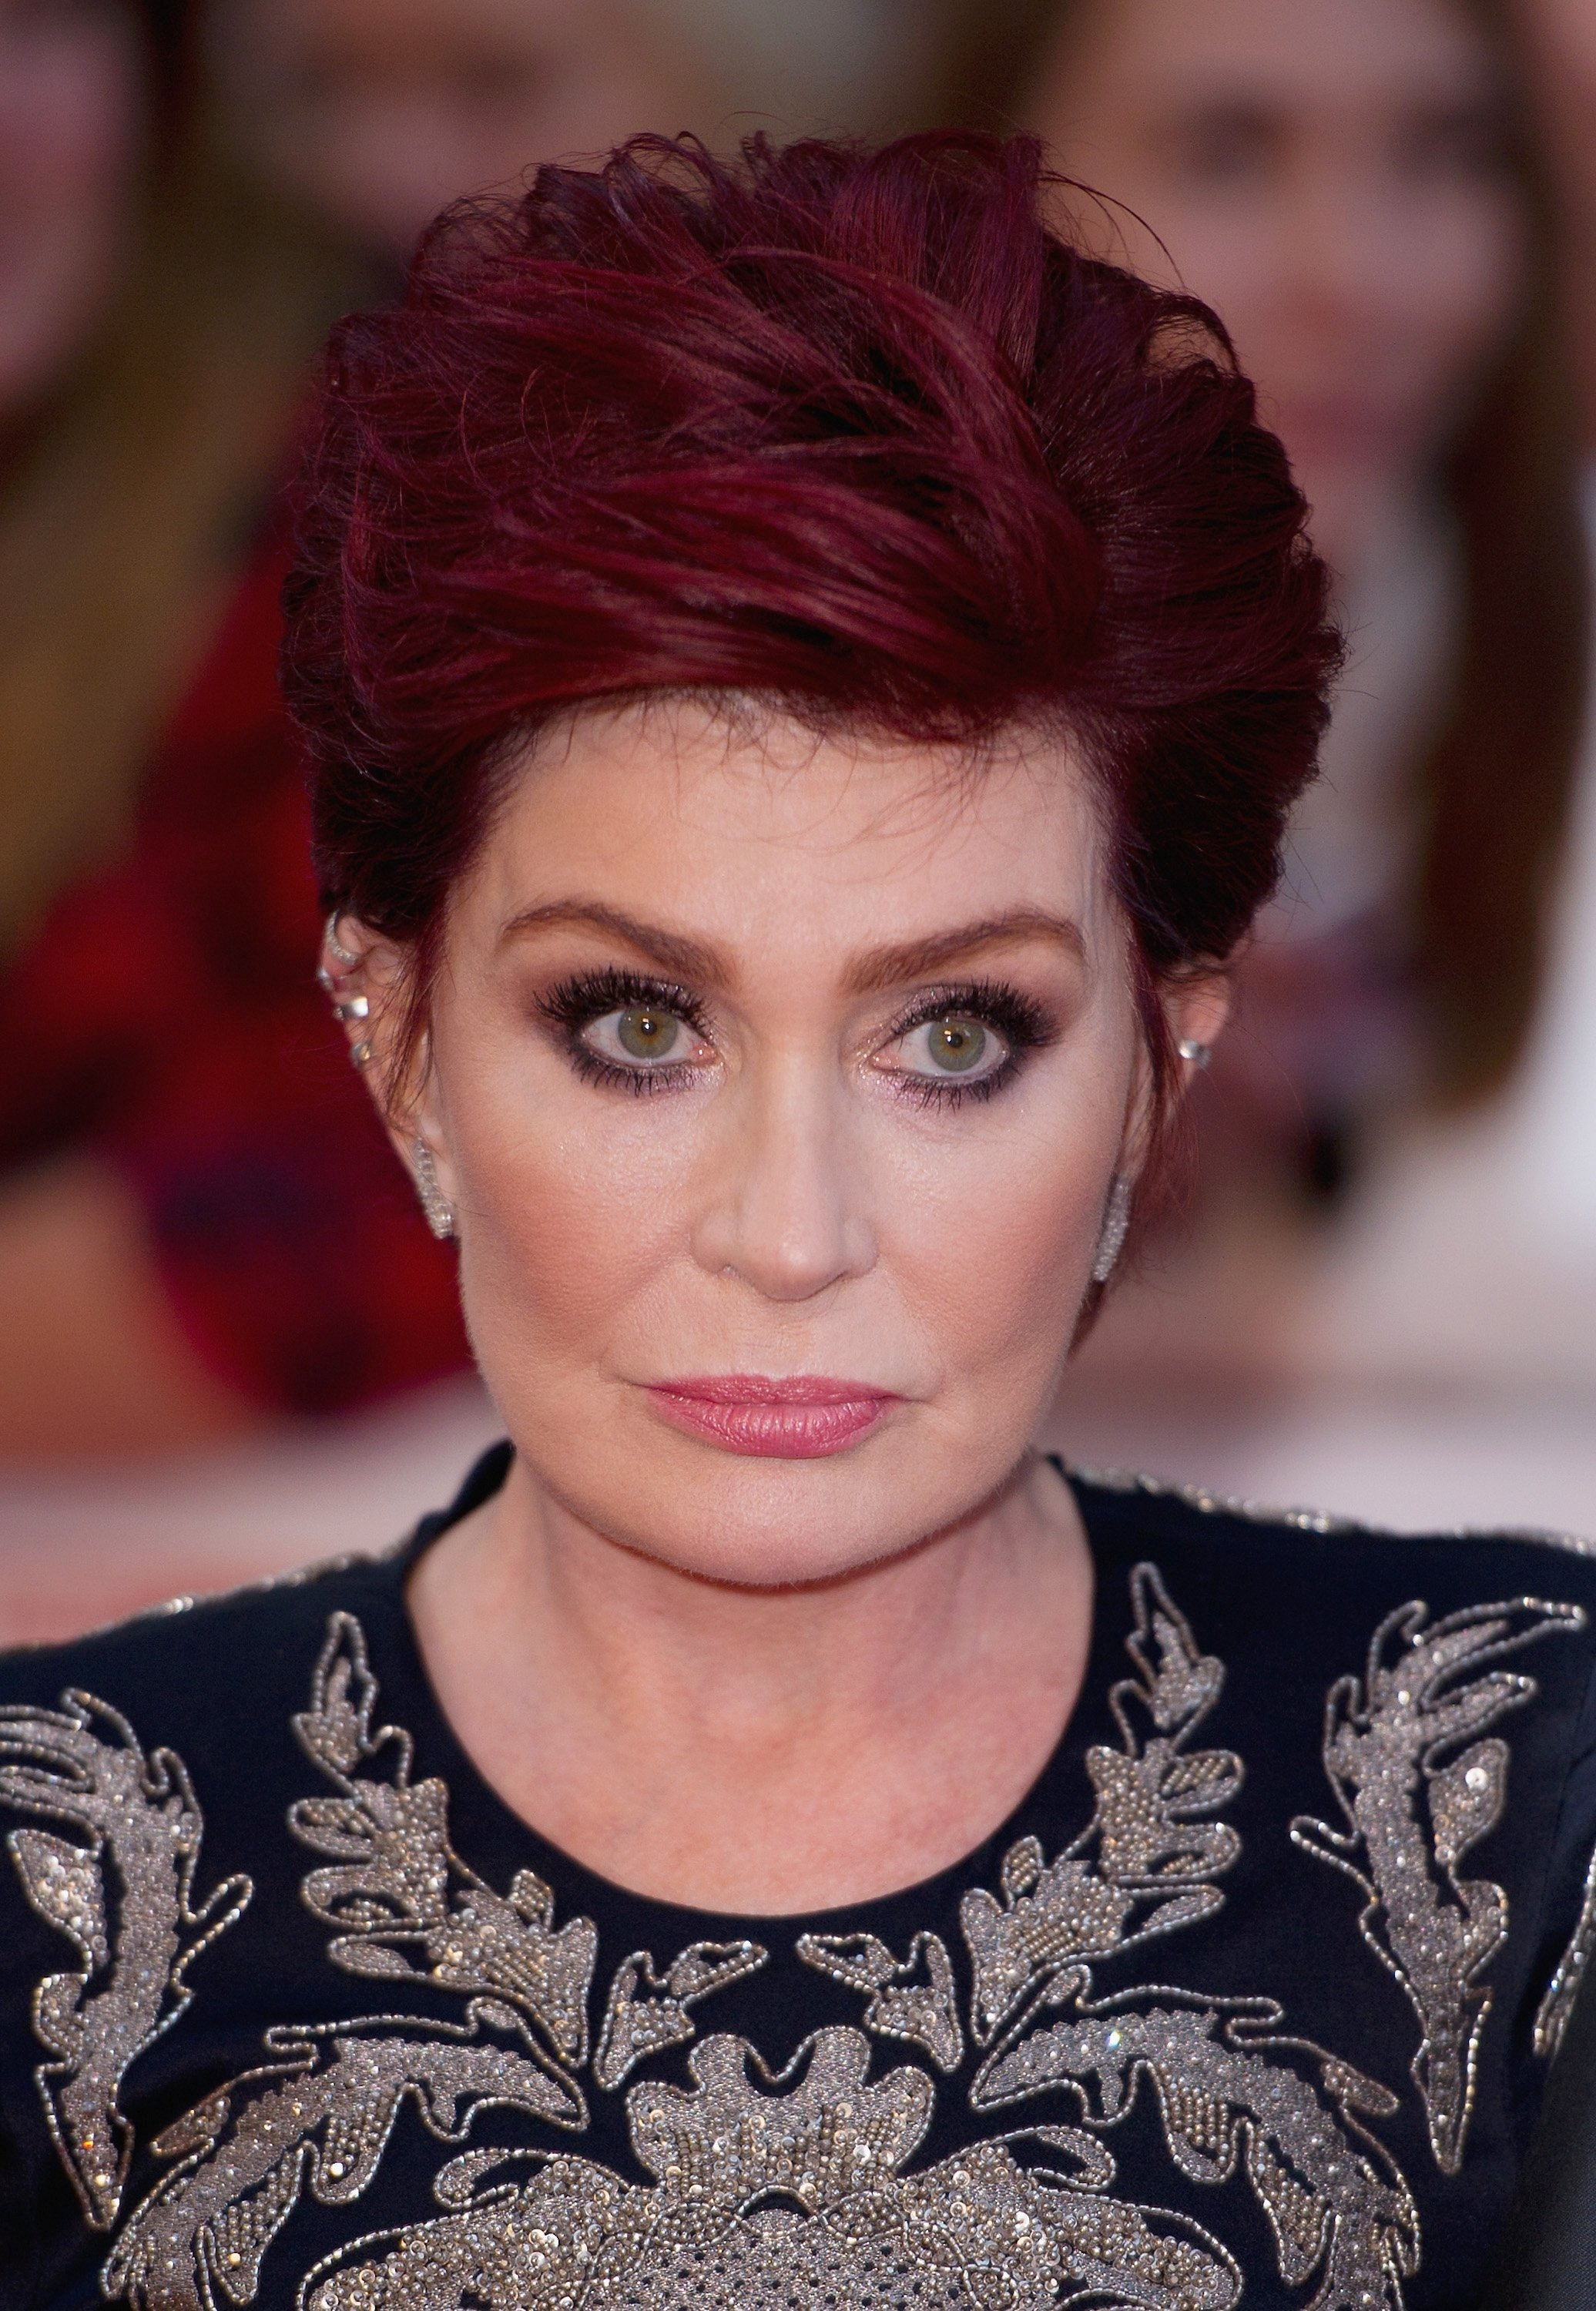 Sharon Osbourne at the Pride of Britain awards on September 28, 2015 | Photo: GettyImages